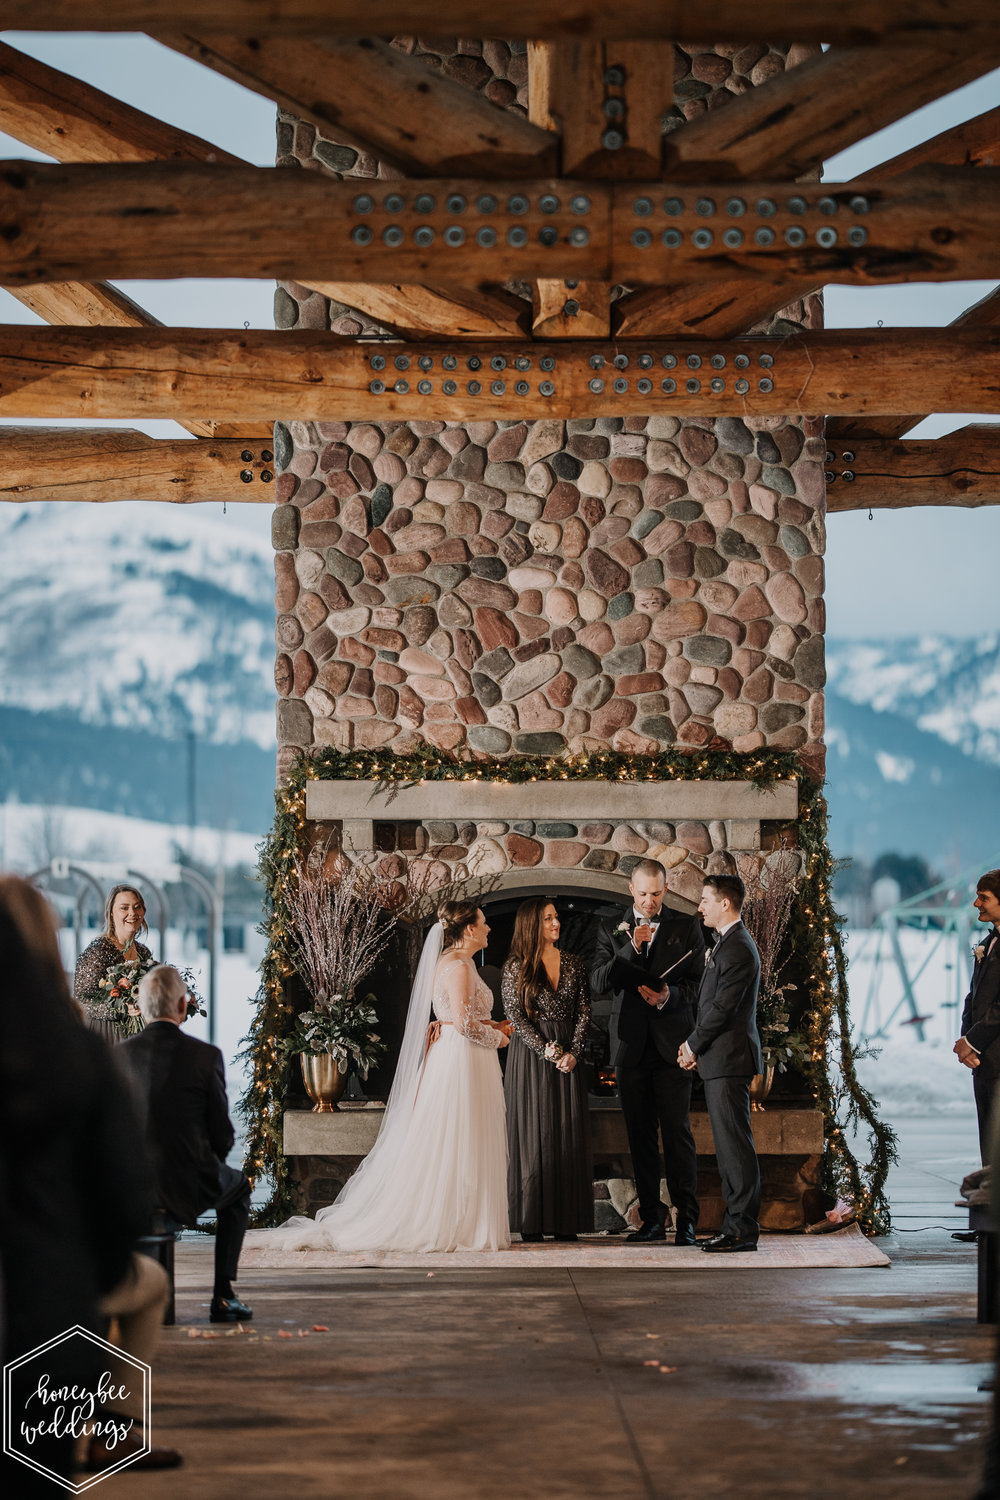 0238Montana Wedding Photographer_Montana winter wedding_Wedding at Fort Missoula_Meri & Carter_December 31, 2015-82.jpg